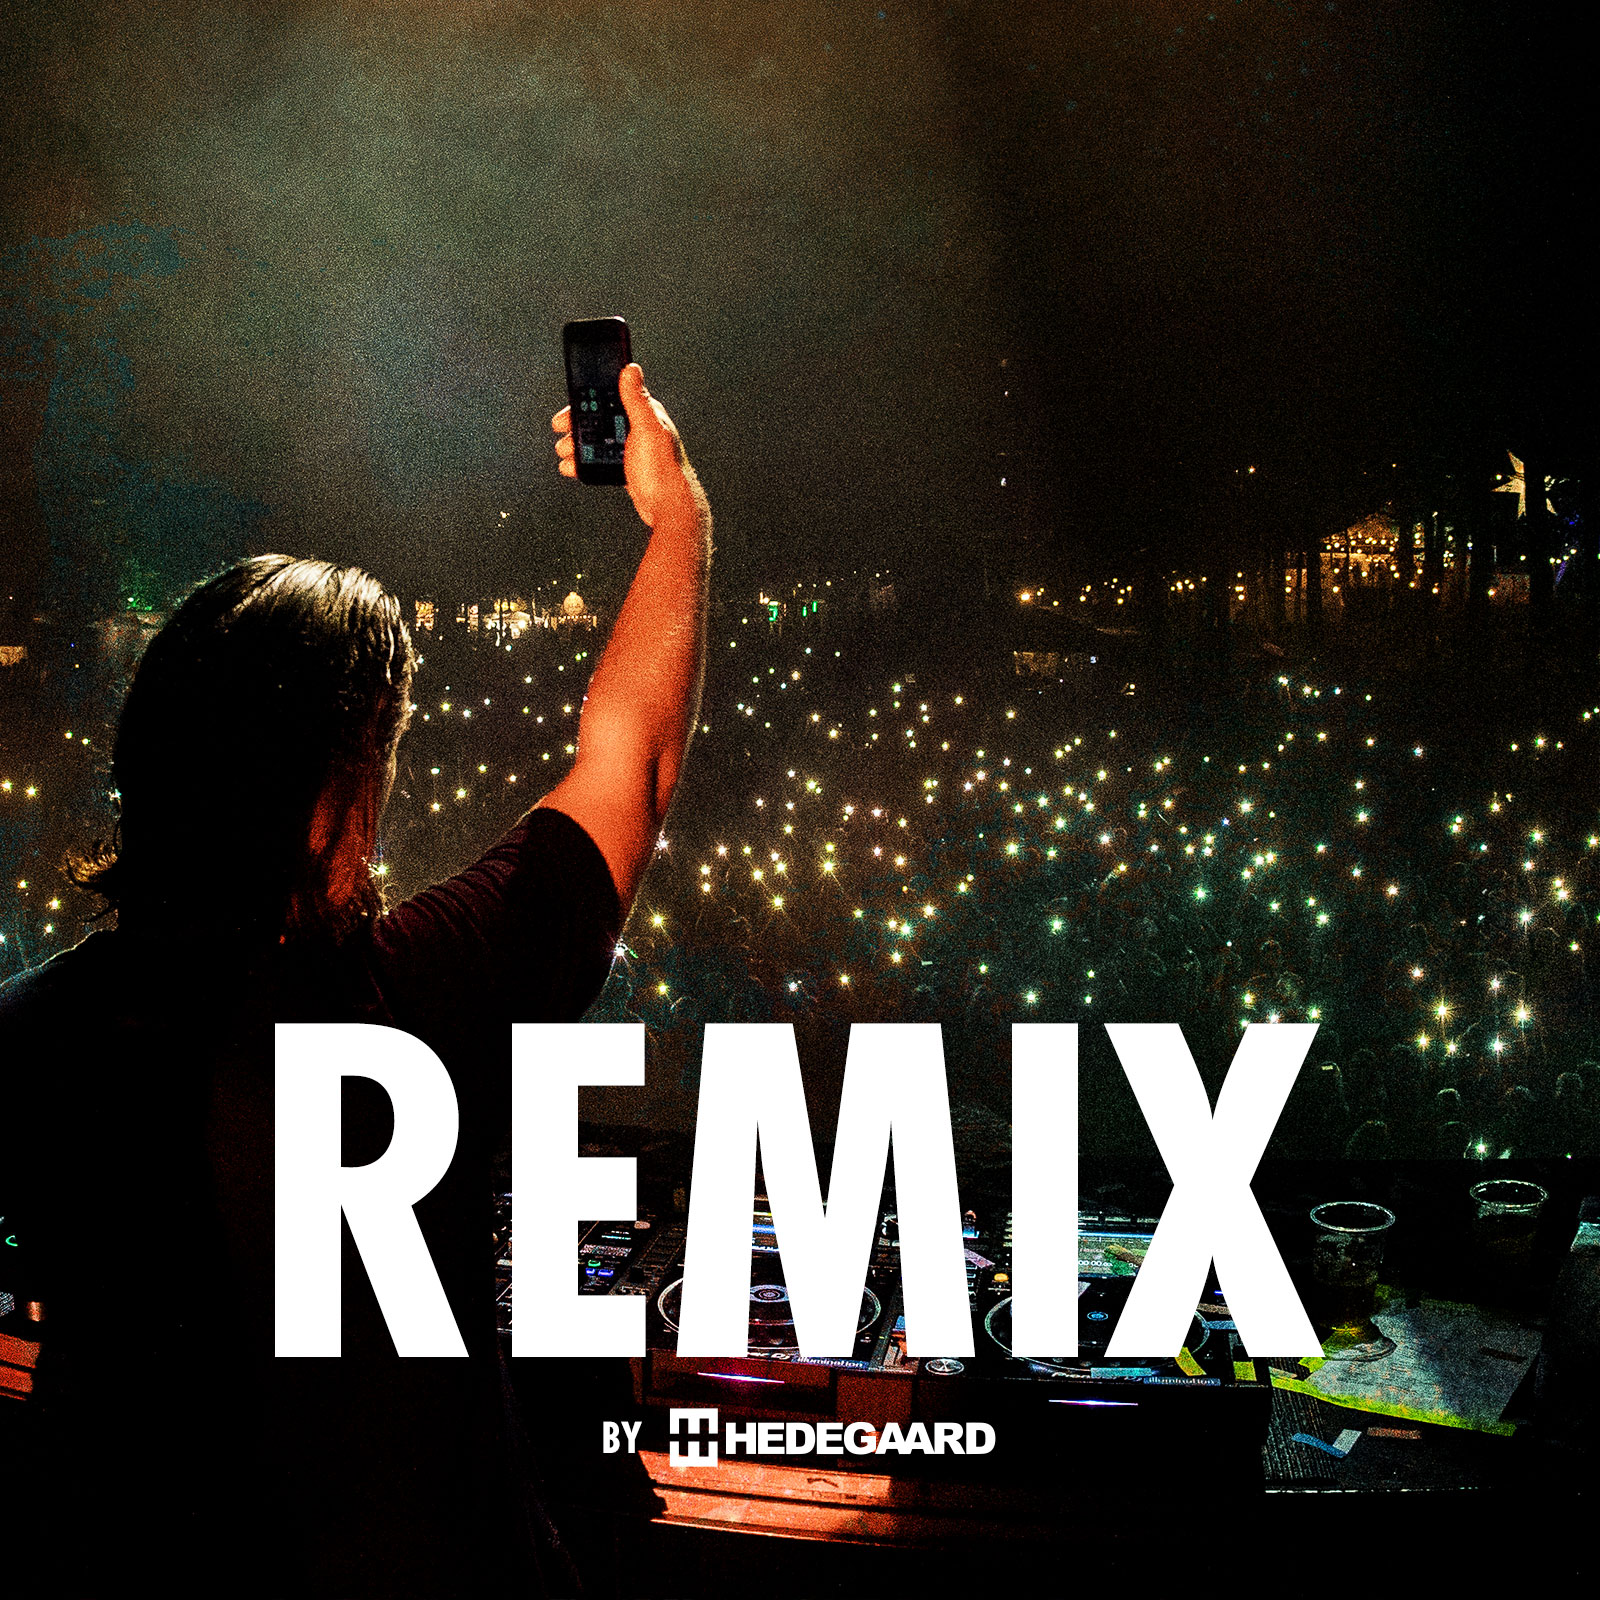 REMIX by HEDEGAARD